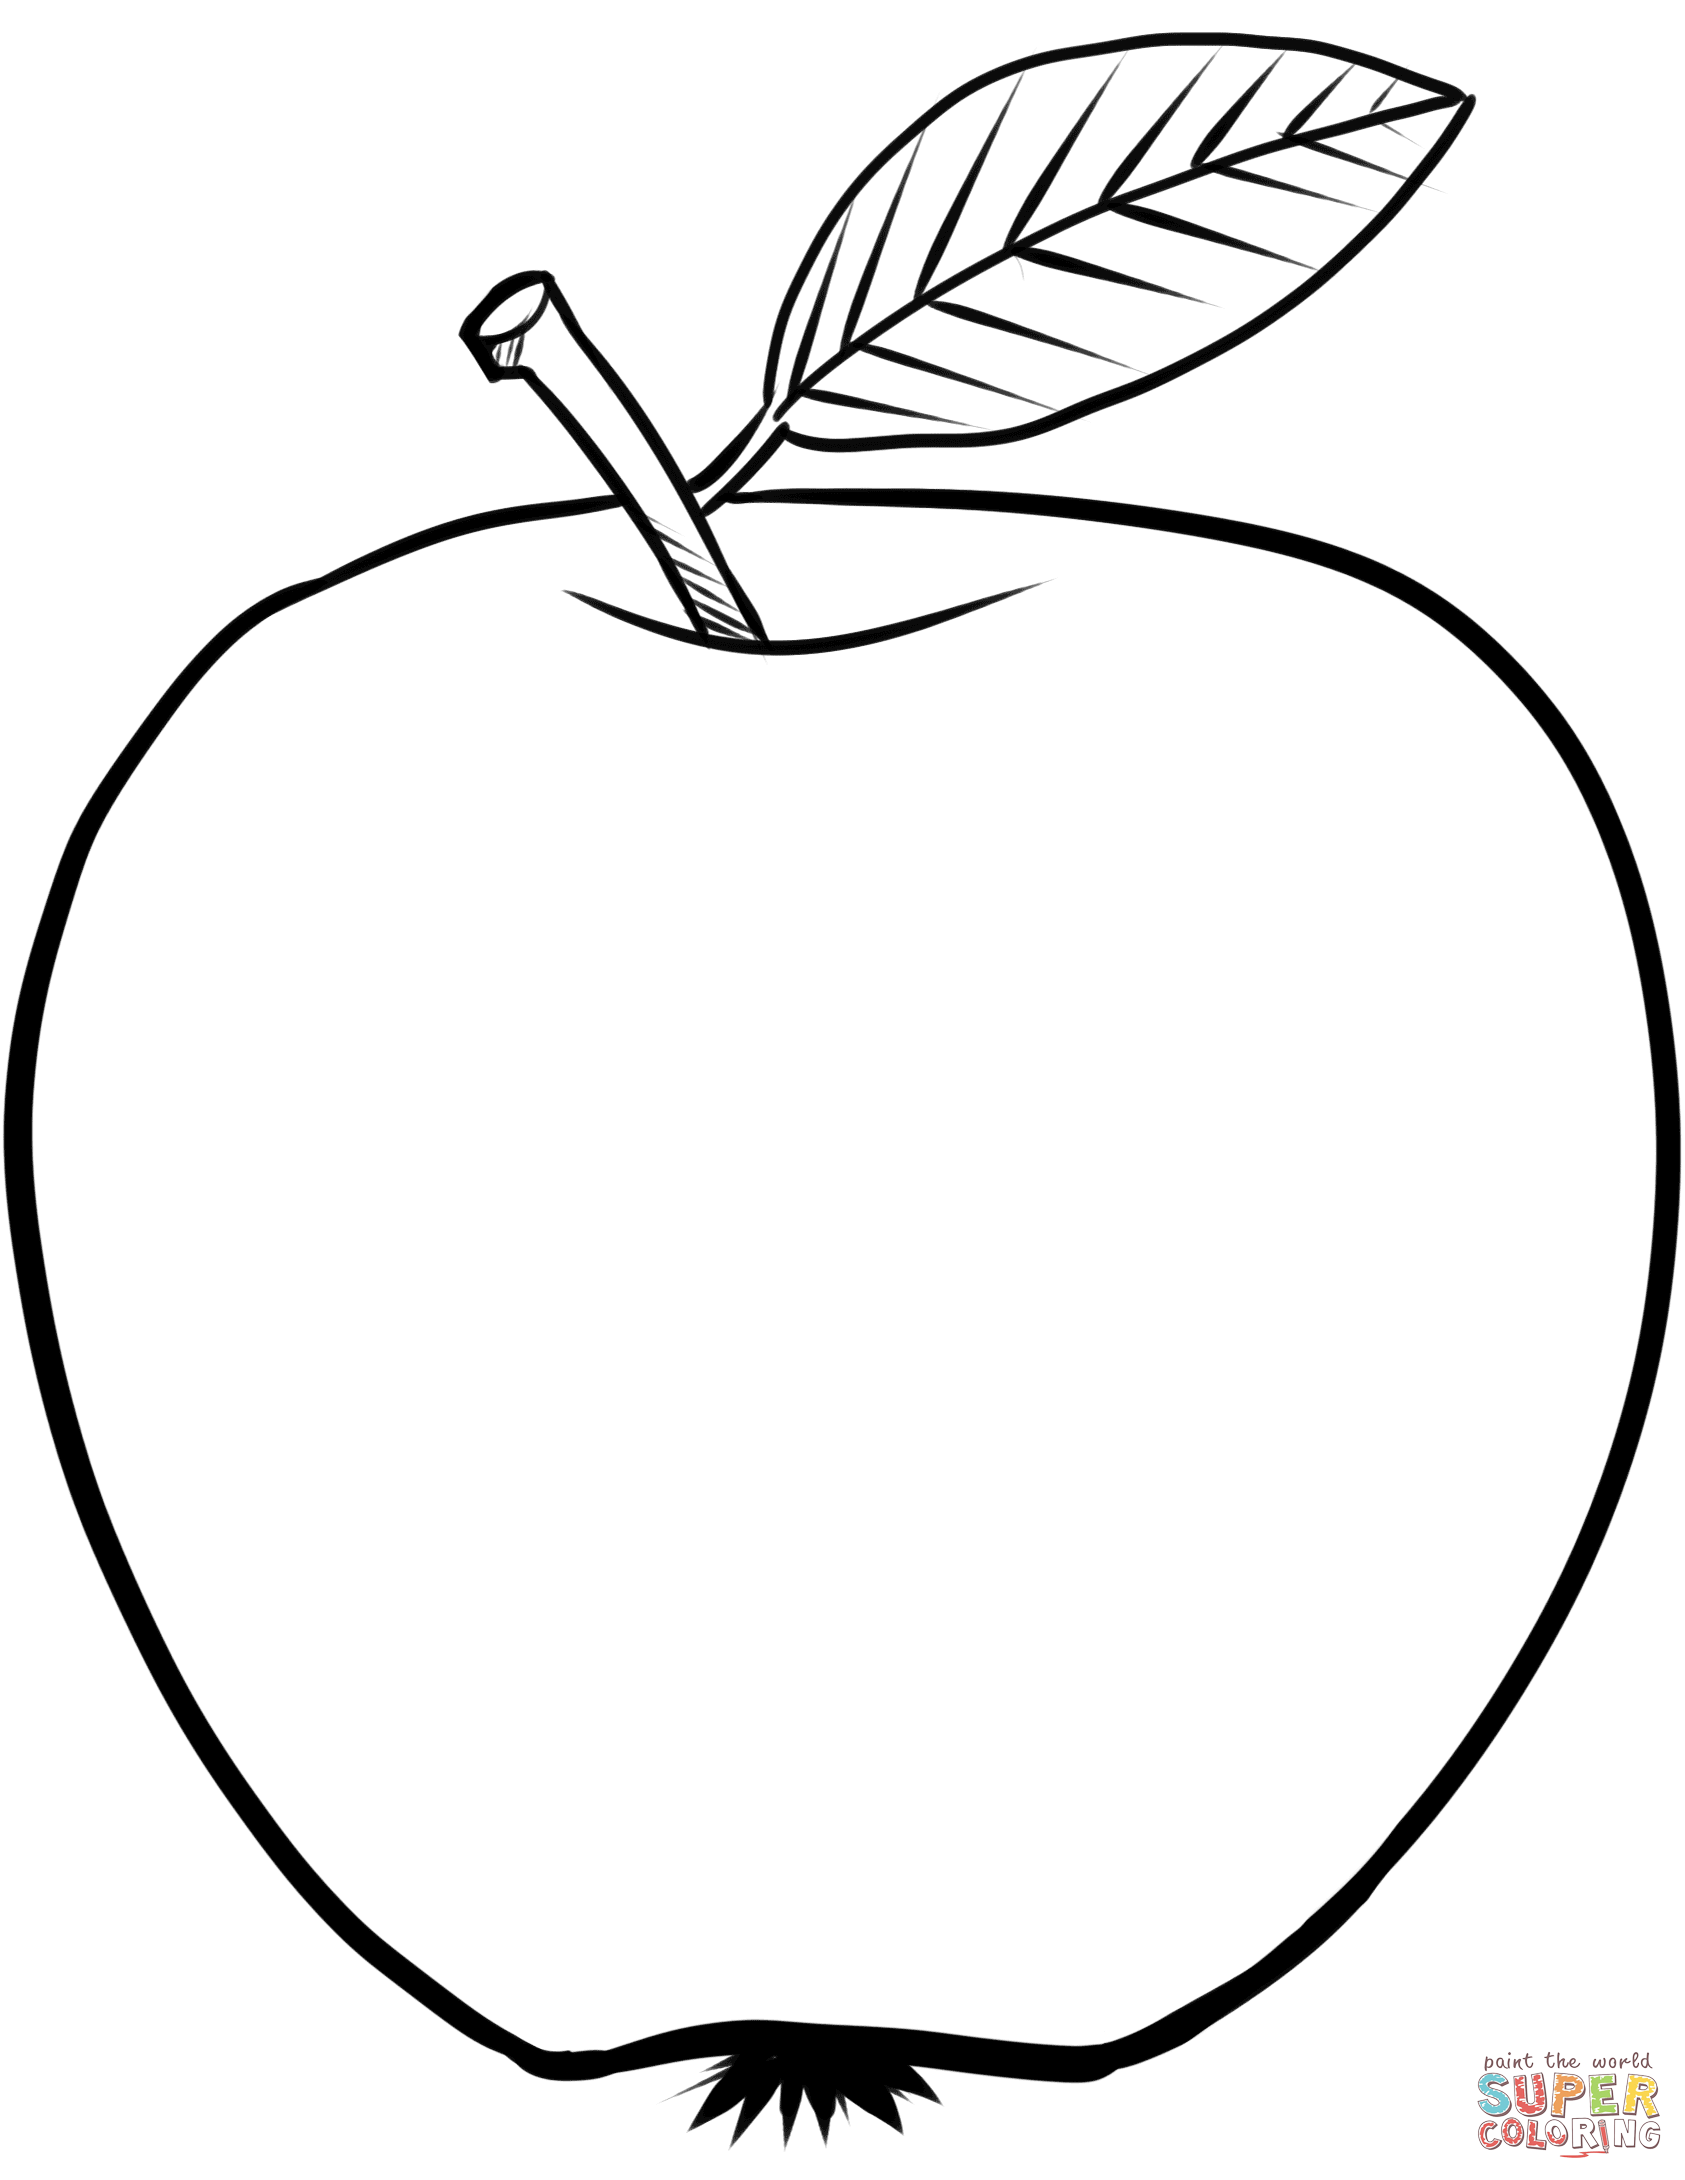 free apple coloring pages kindergarten worksheet guide pictures clip art line coloring free pages apple